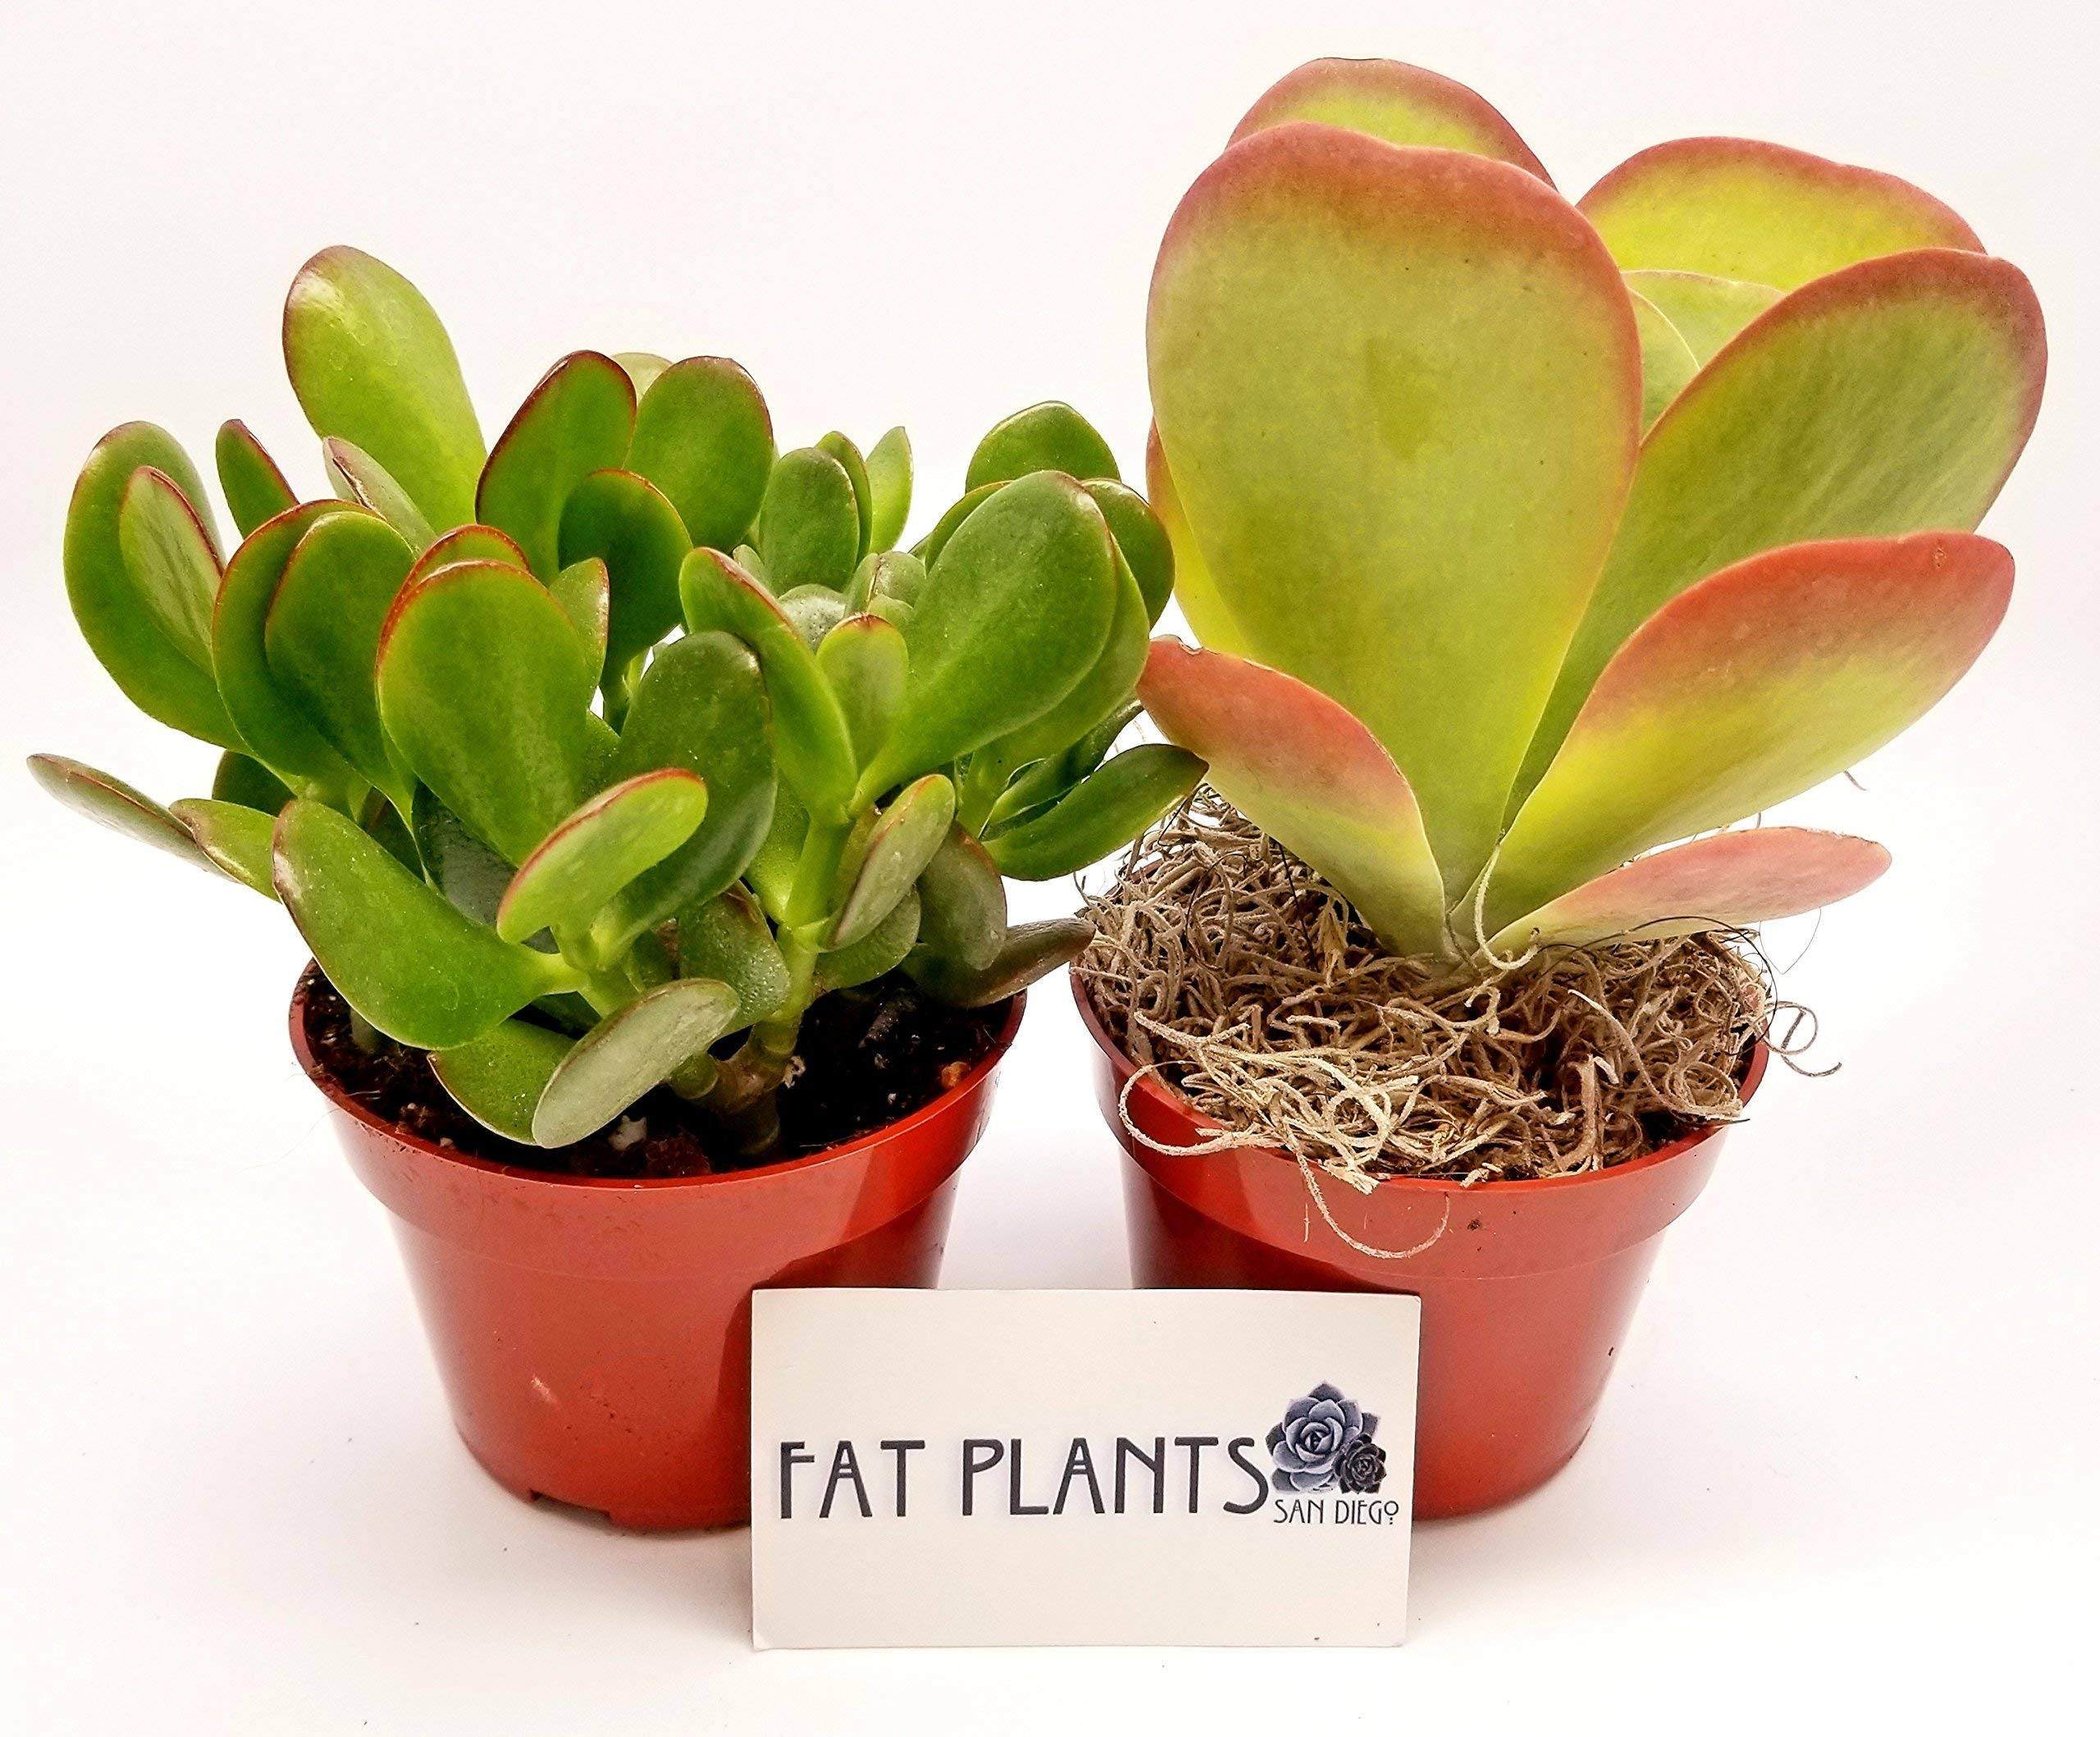 Fat Plants San Diego Live Succulent Plant Variety Collection by Fat Plants San Diego (Image #2)